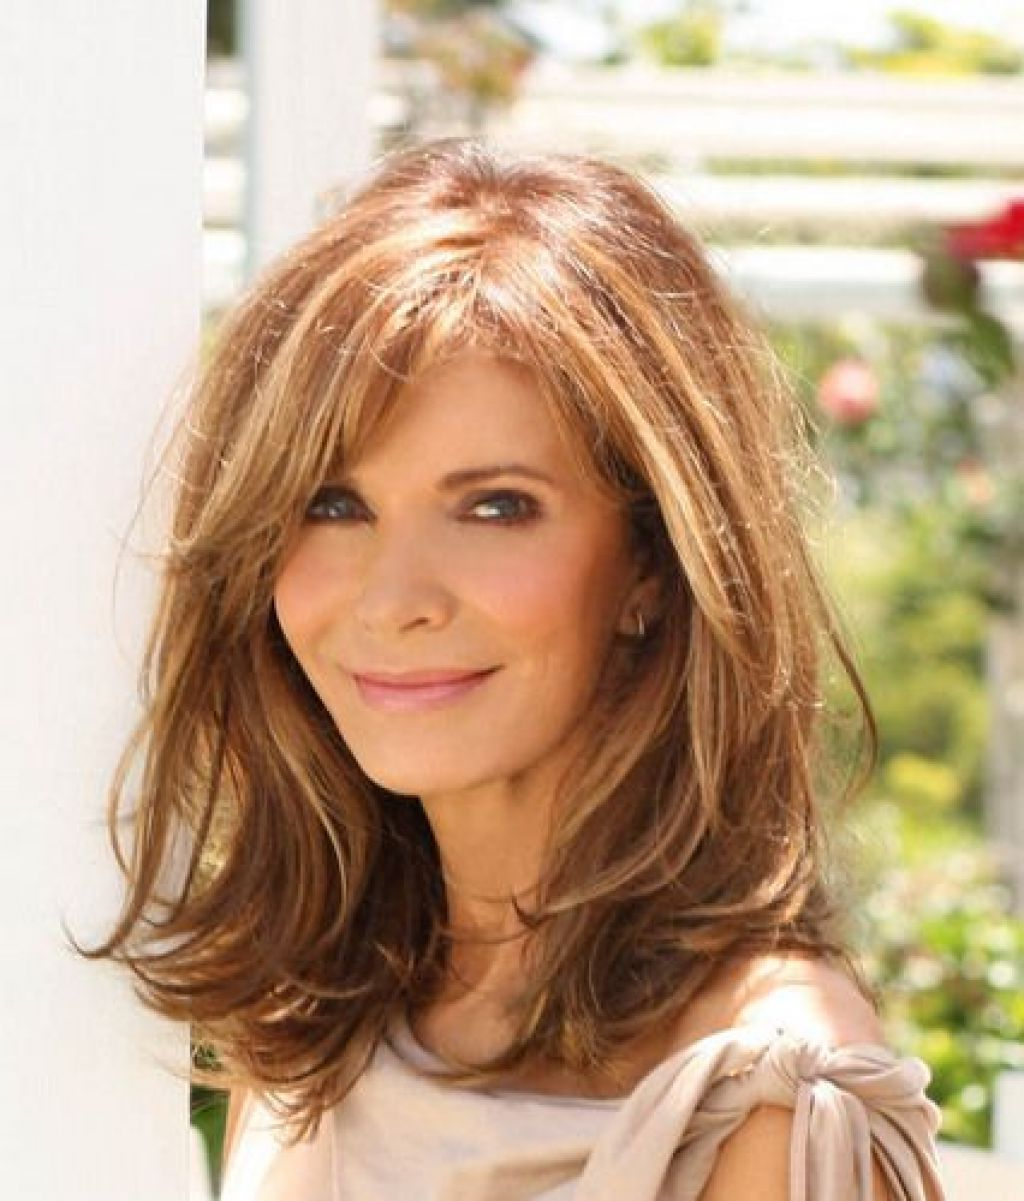 Long Layer Hairstyles Long Layered Haircuts With Bangs Long Inside Short And Long Layer Hairstyles (View 18 of 20)